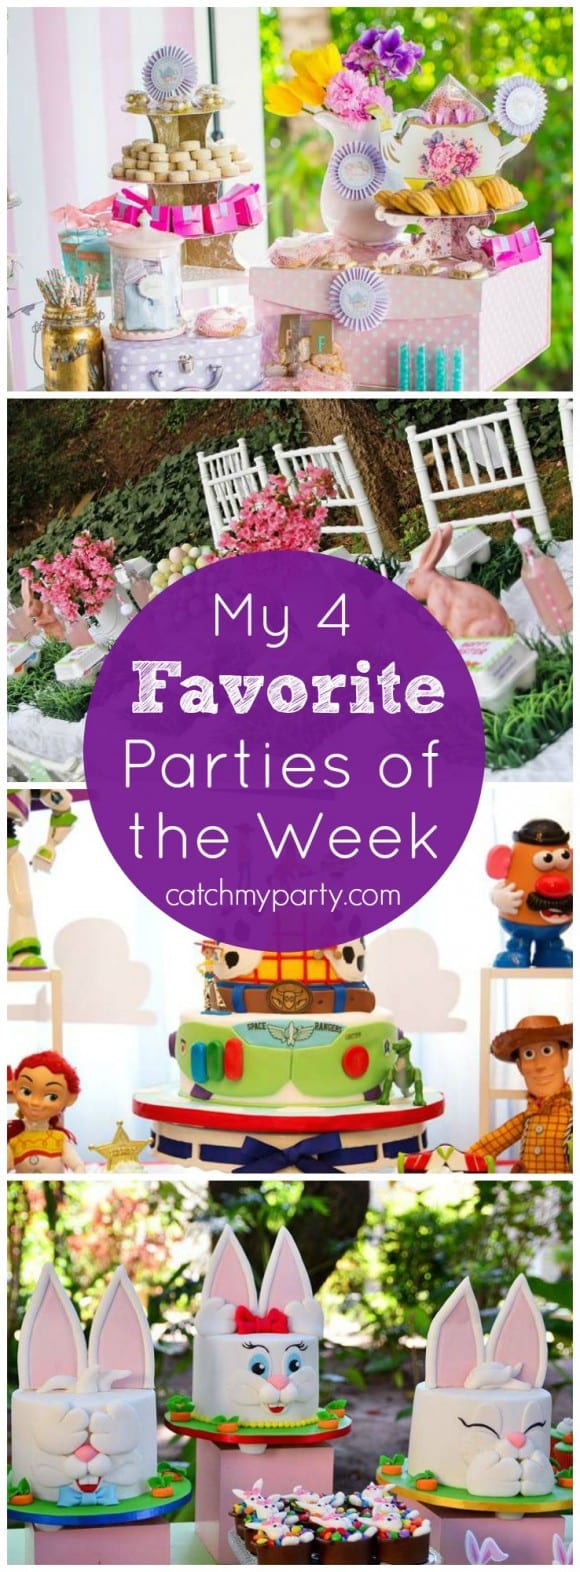 This week my favorite parties include a garden tea party birthday, an Easter egg hunt party, an awesome Toy Story party, and an Easter picnic held outside | CatchMyParty.com